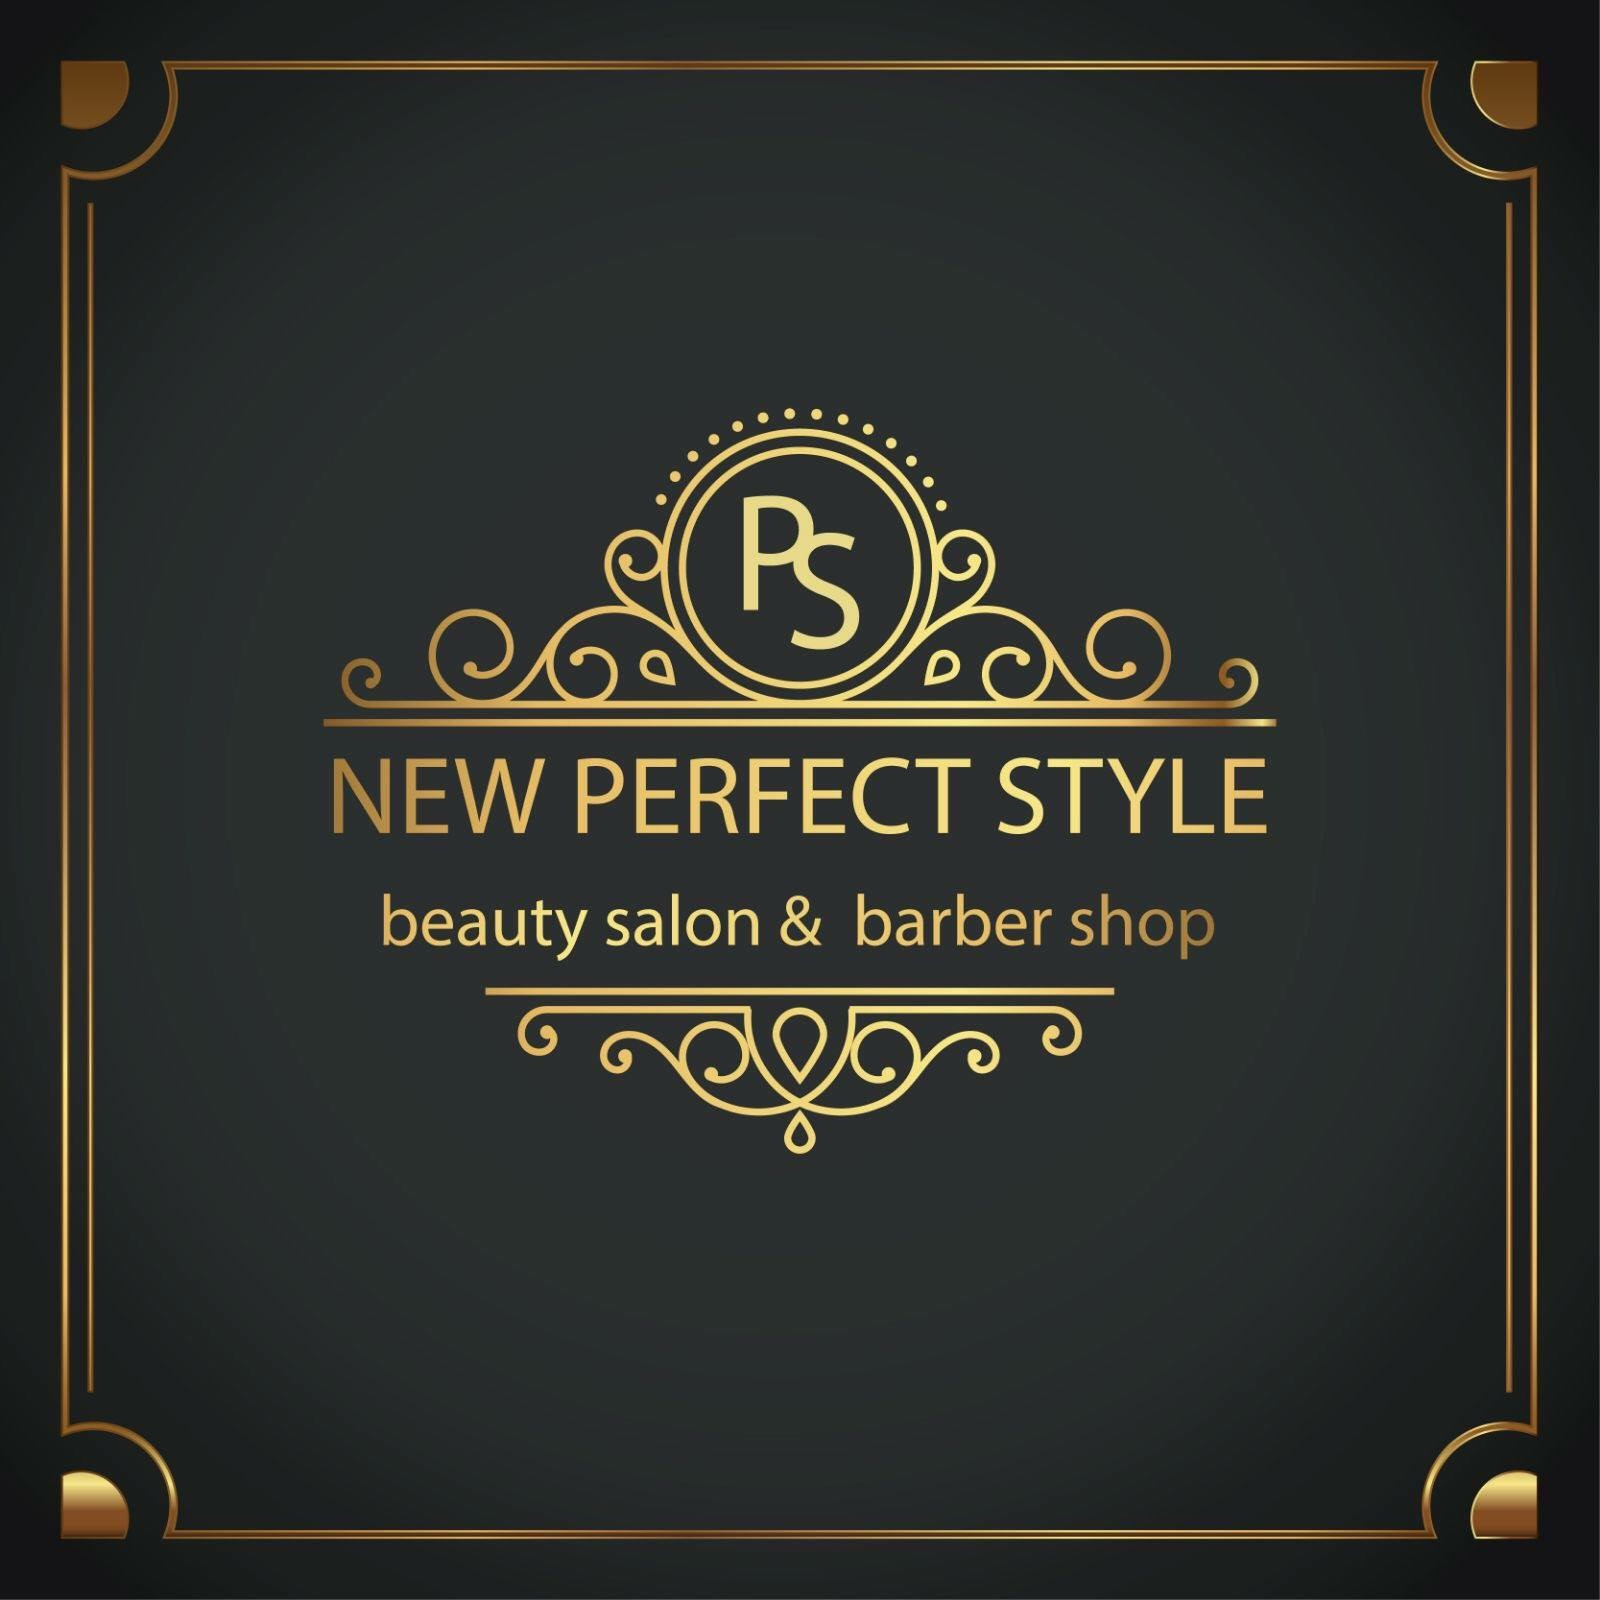 NEW PERFECT STYLE